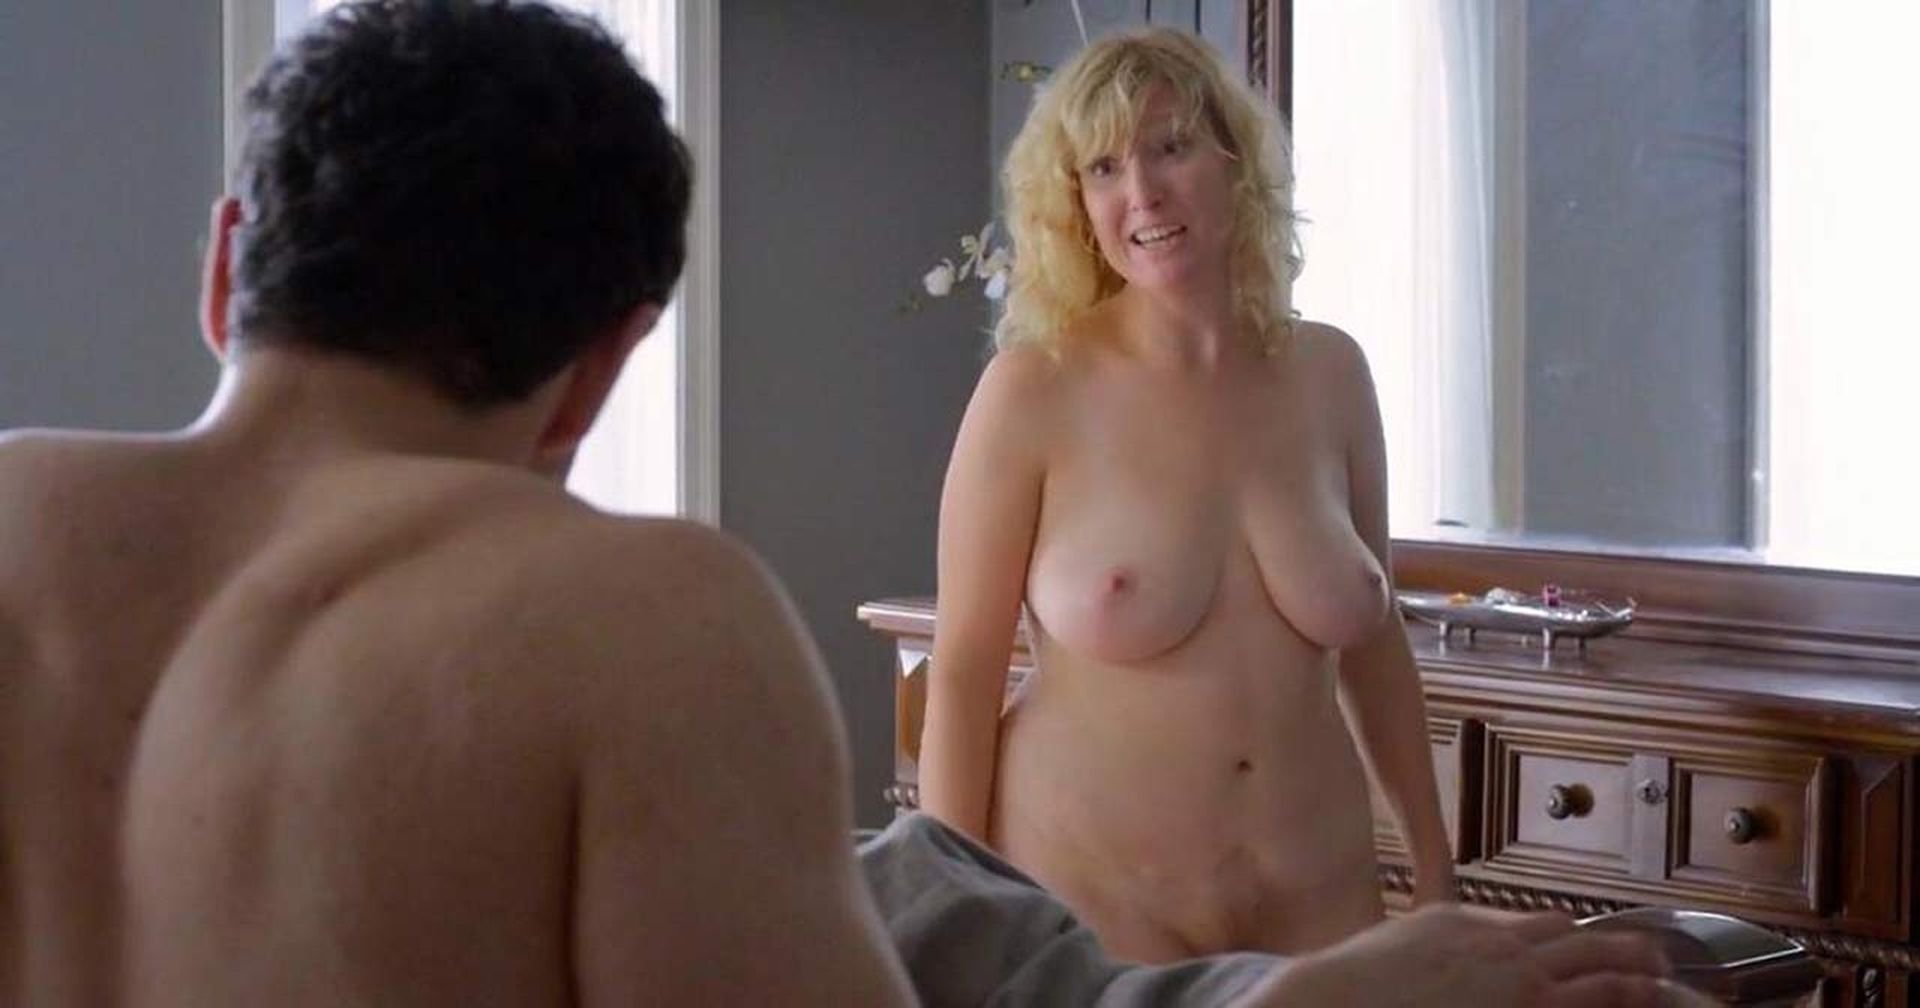 Adam sandler shirtless